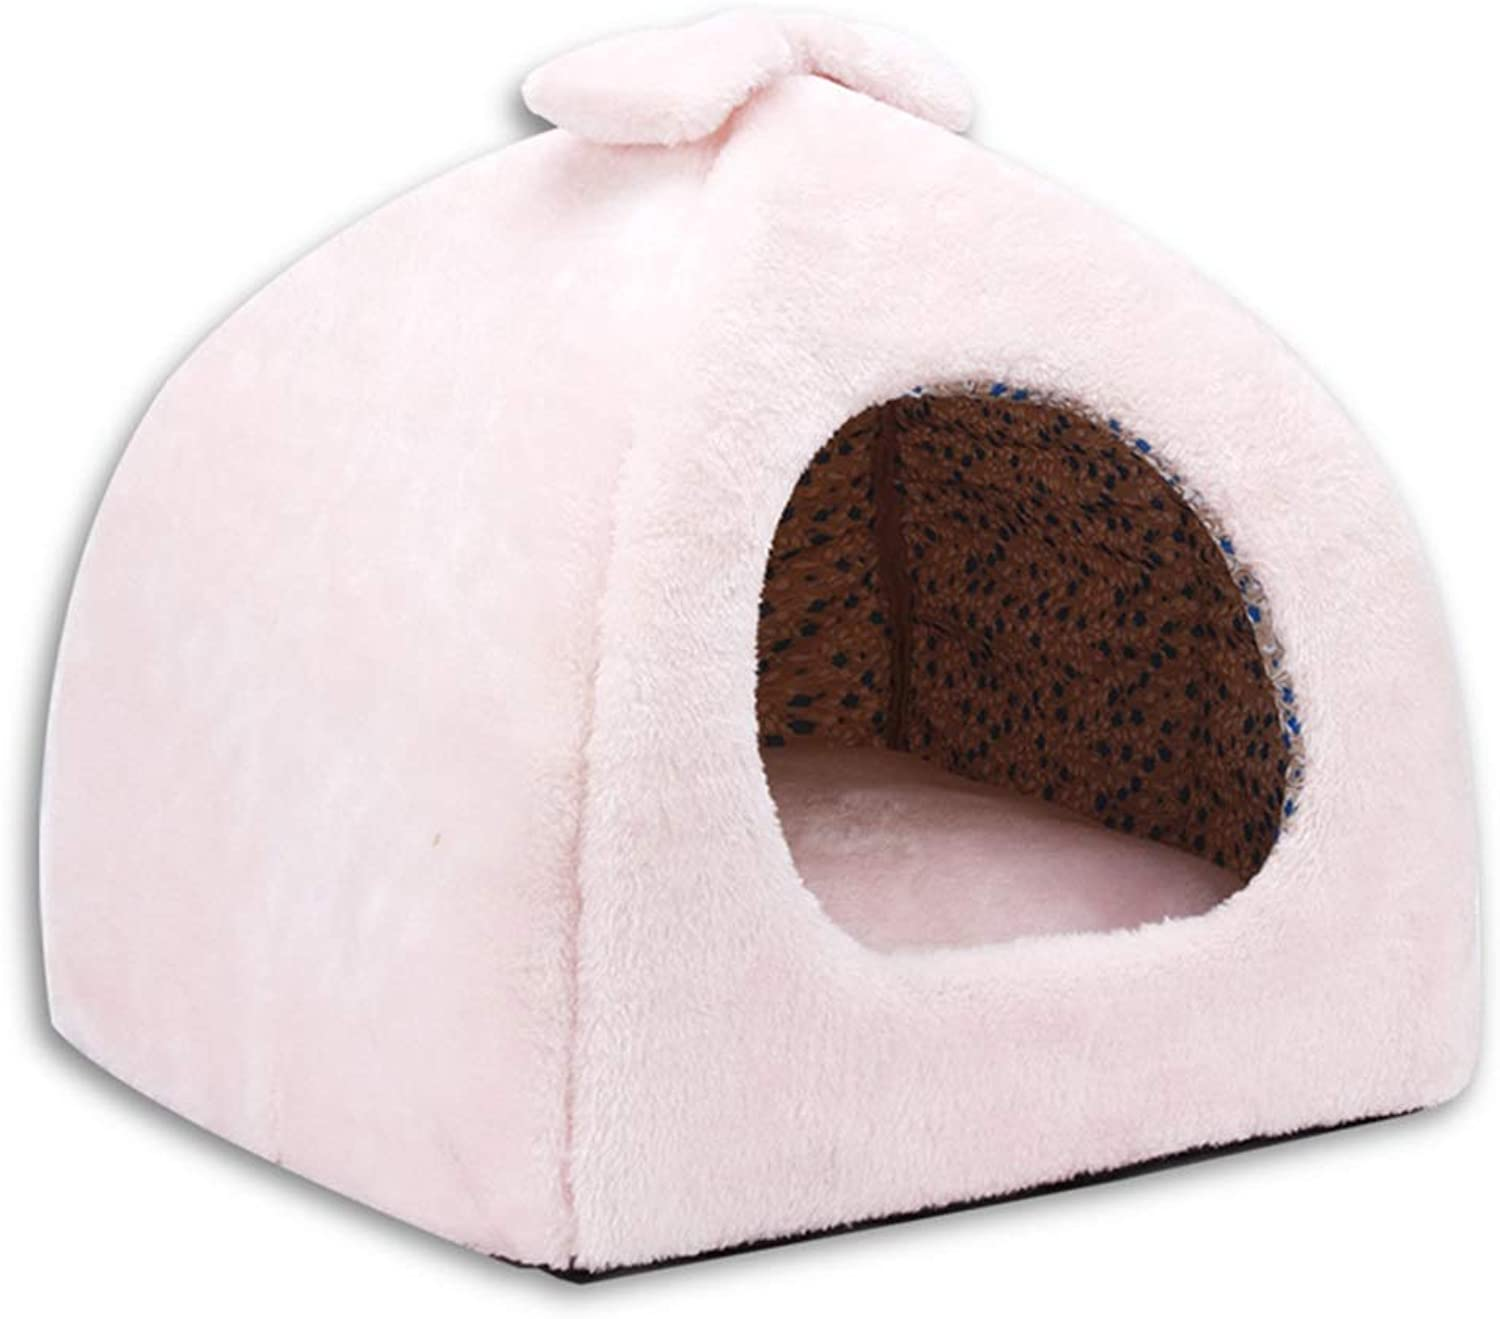 QUD Cat nest, winter warm cat sleeping bag four seasons universal cat house cat house puppies kennel (color   PINK, Size   38  38  37cm)